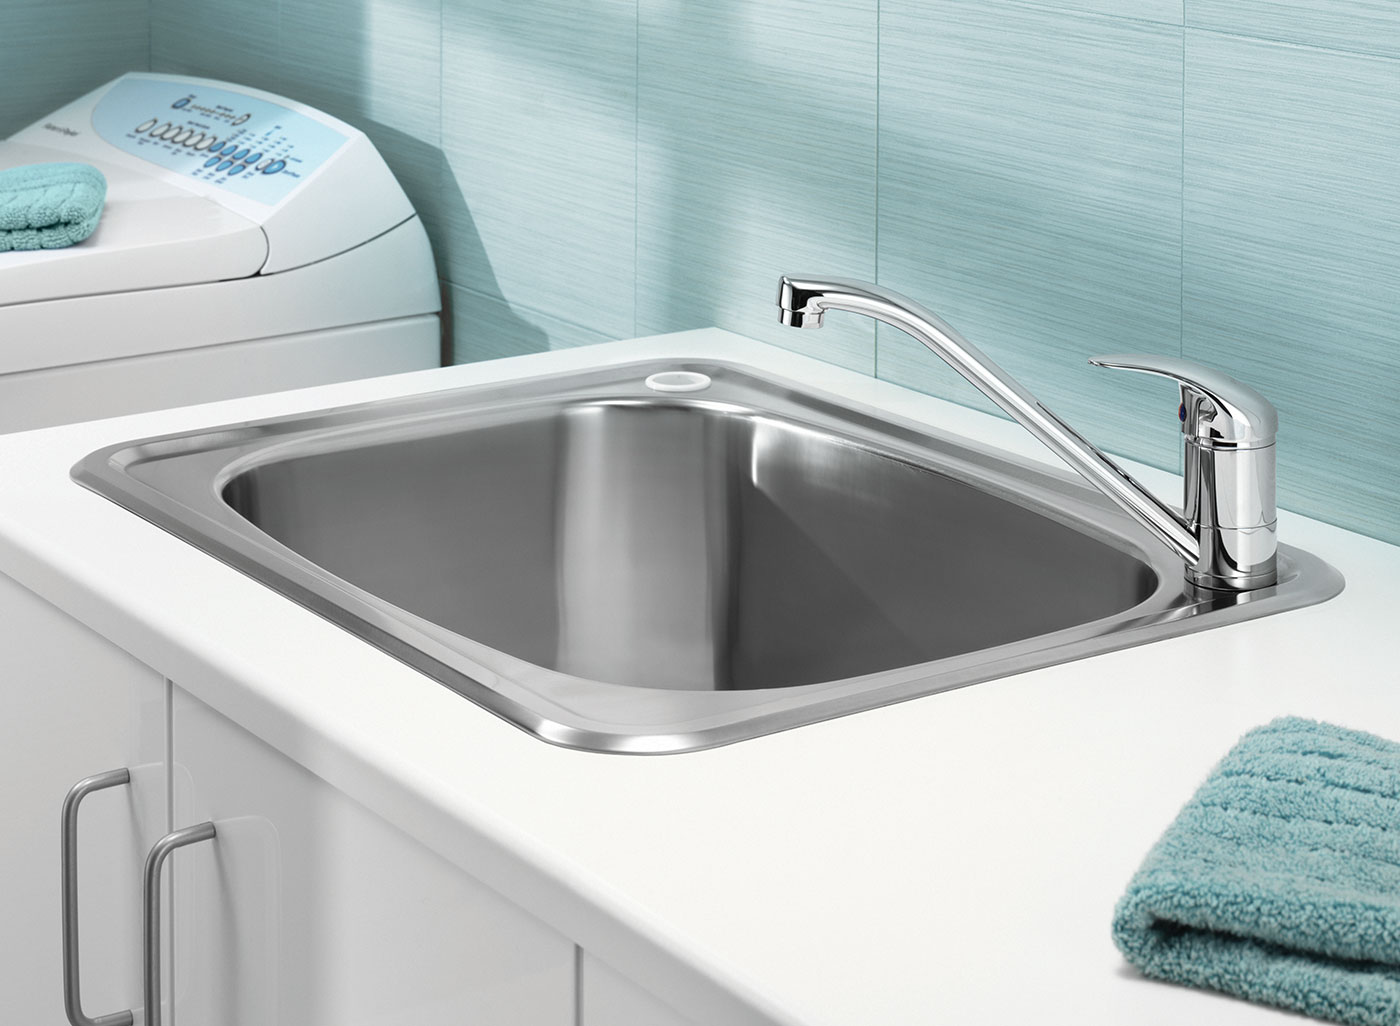 flush-fitting laundry tubs from Clark are designed to add style to any laundry and are available in standard width or space saving compact width